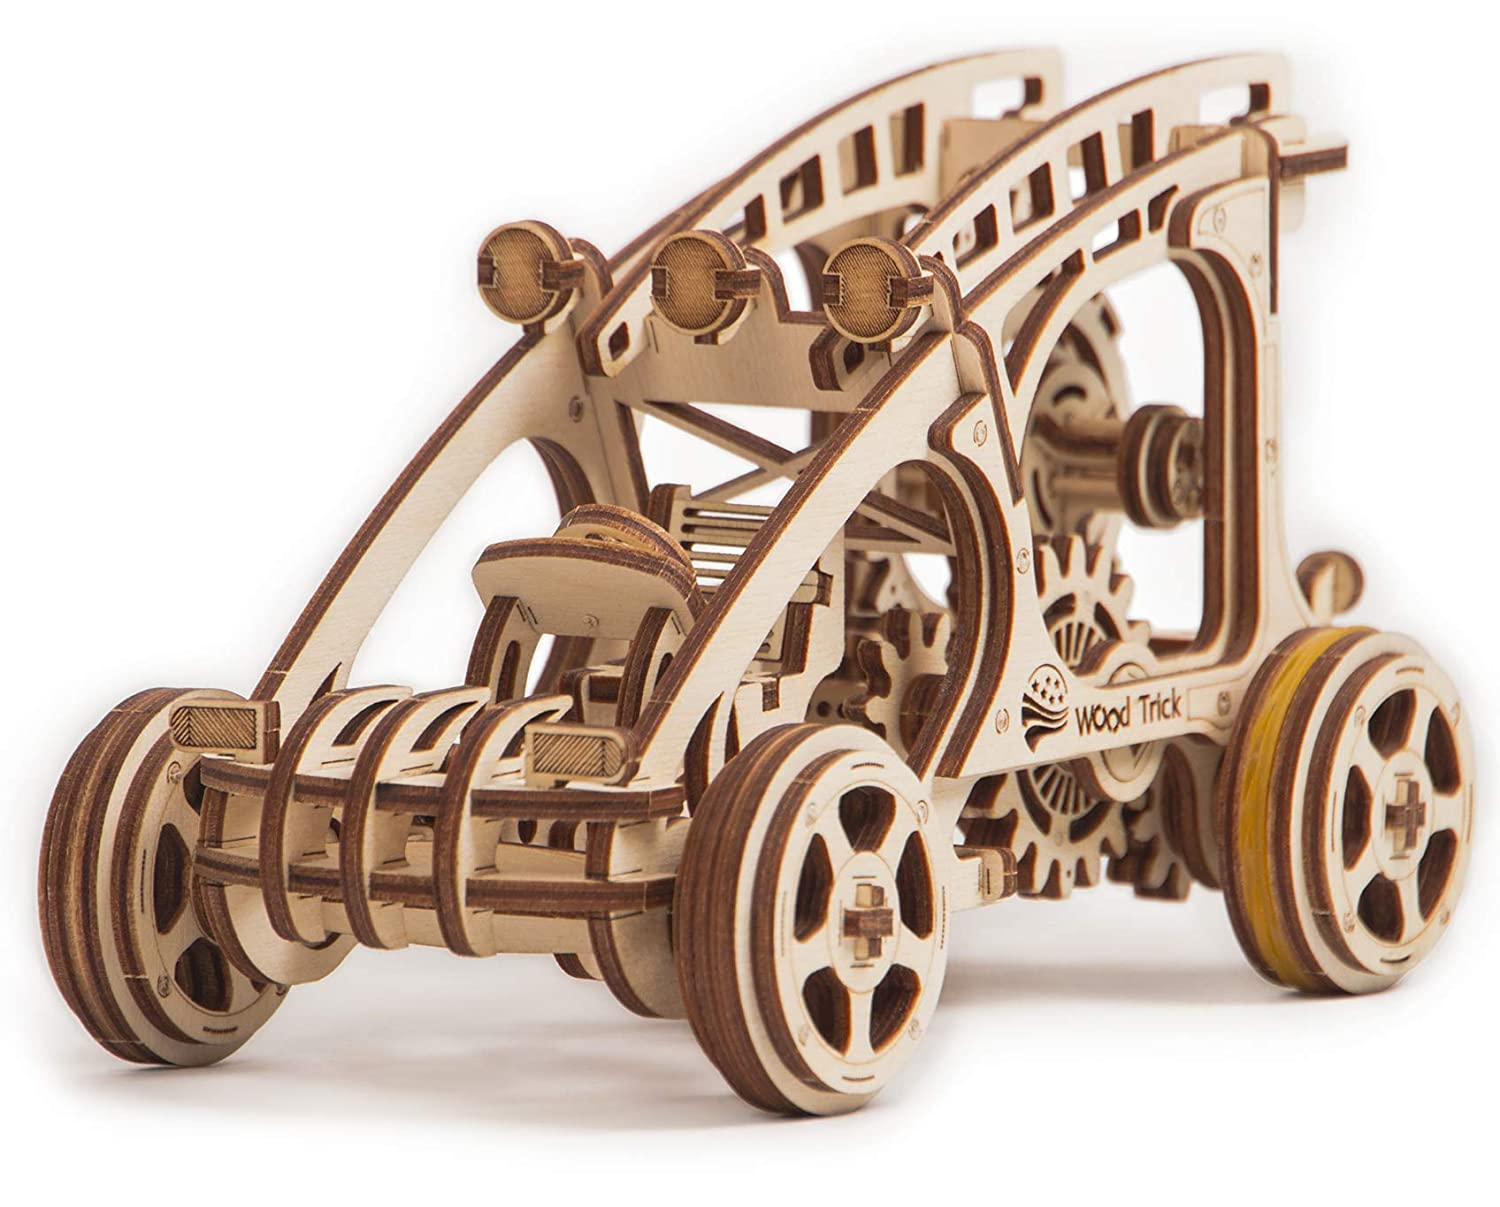 Wood Trick Dune Buggy Wagon Car Mechanical Models 3d Wooden Puzzles Diy Toy Assembly Gears Constructor Kits For Kids Teens And Adults